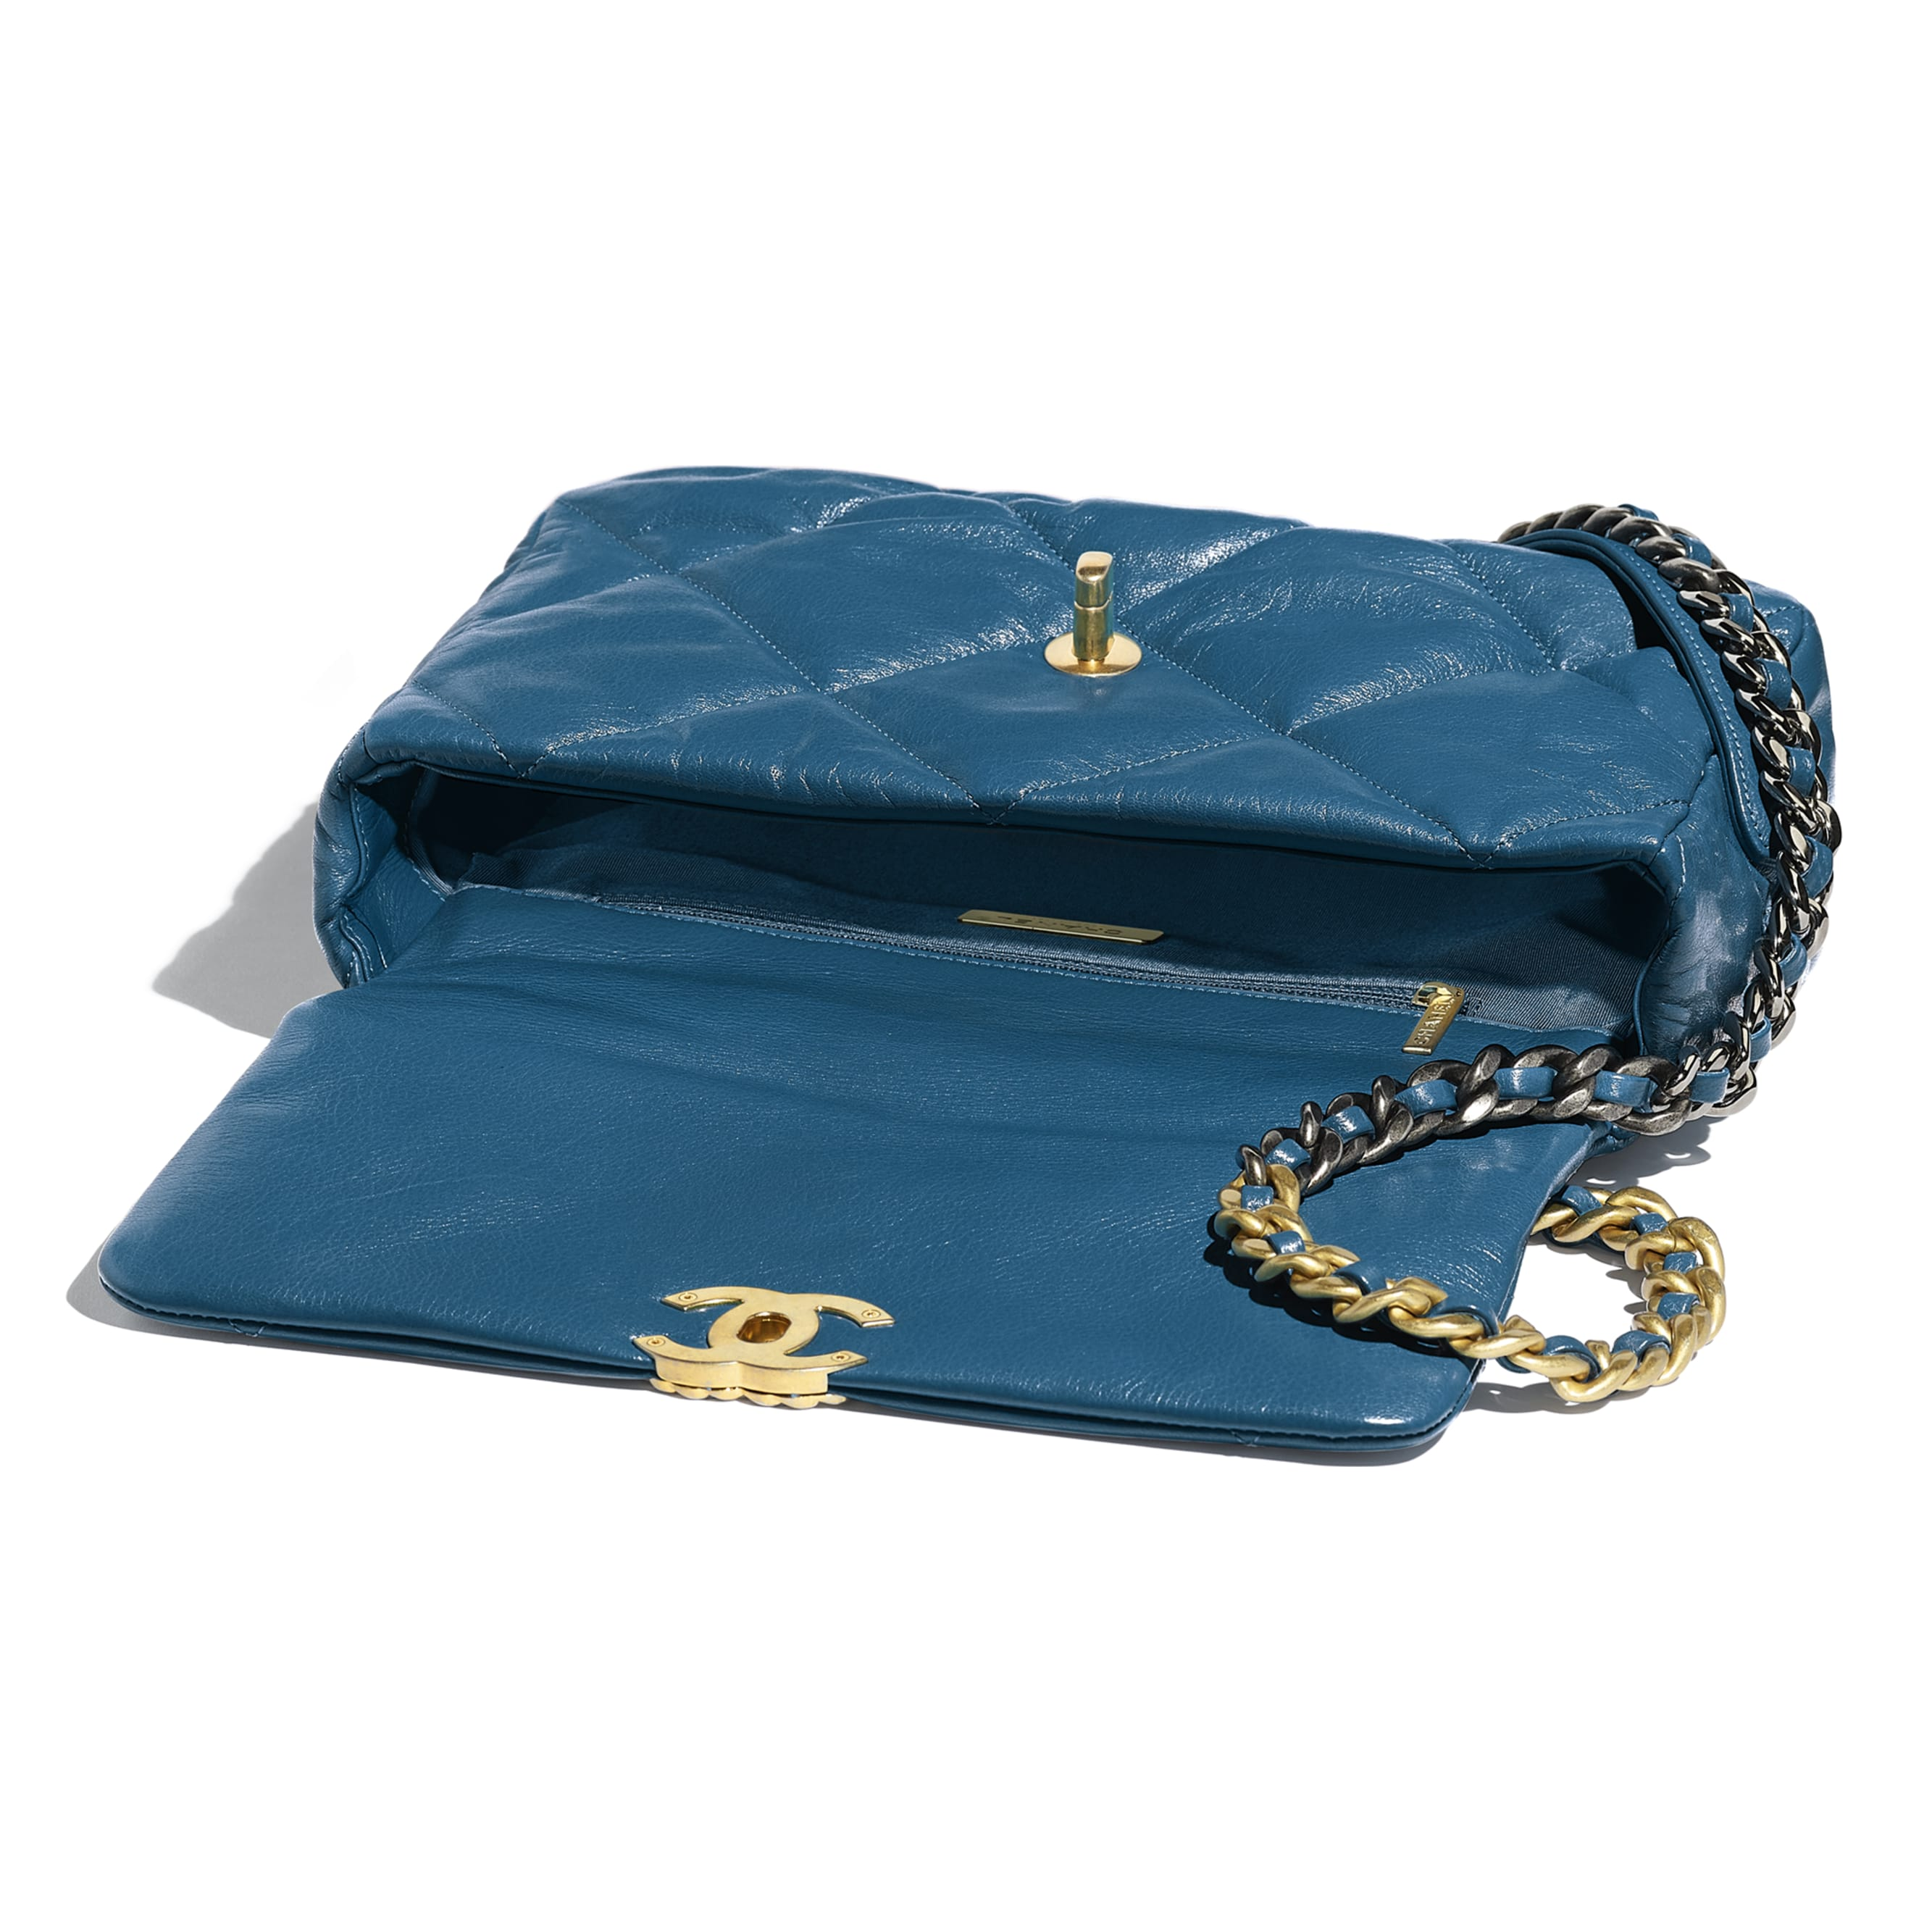 CHANEL 19 Large Flap Bag - Turquoise - Goatskin, Gold-Tone, Silver-Tone & Ruthenium-Finish Metal - Other view - see standard sized version